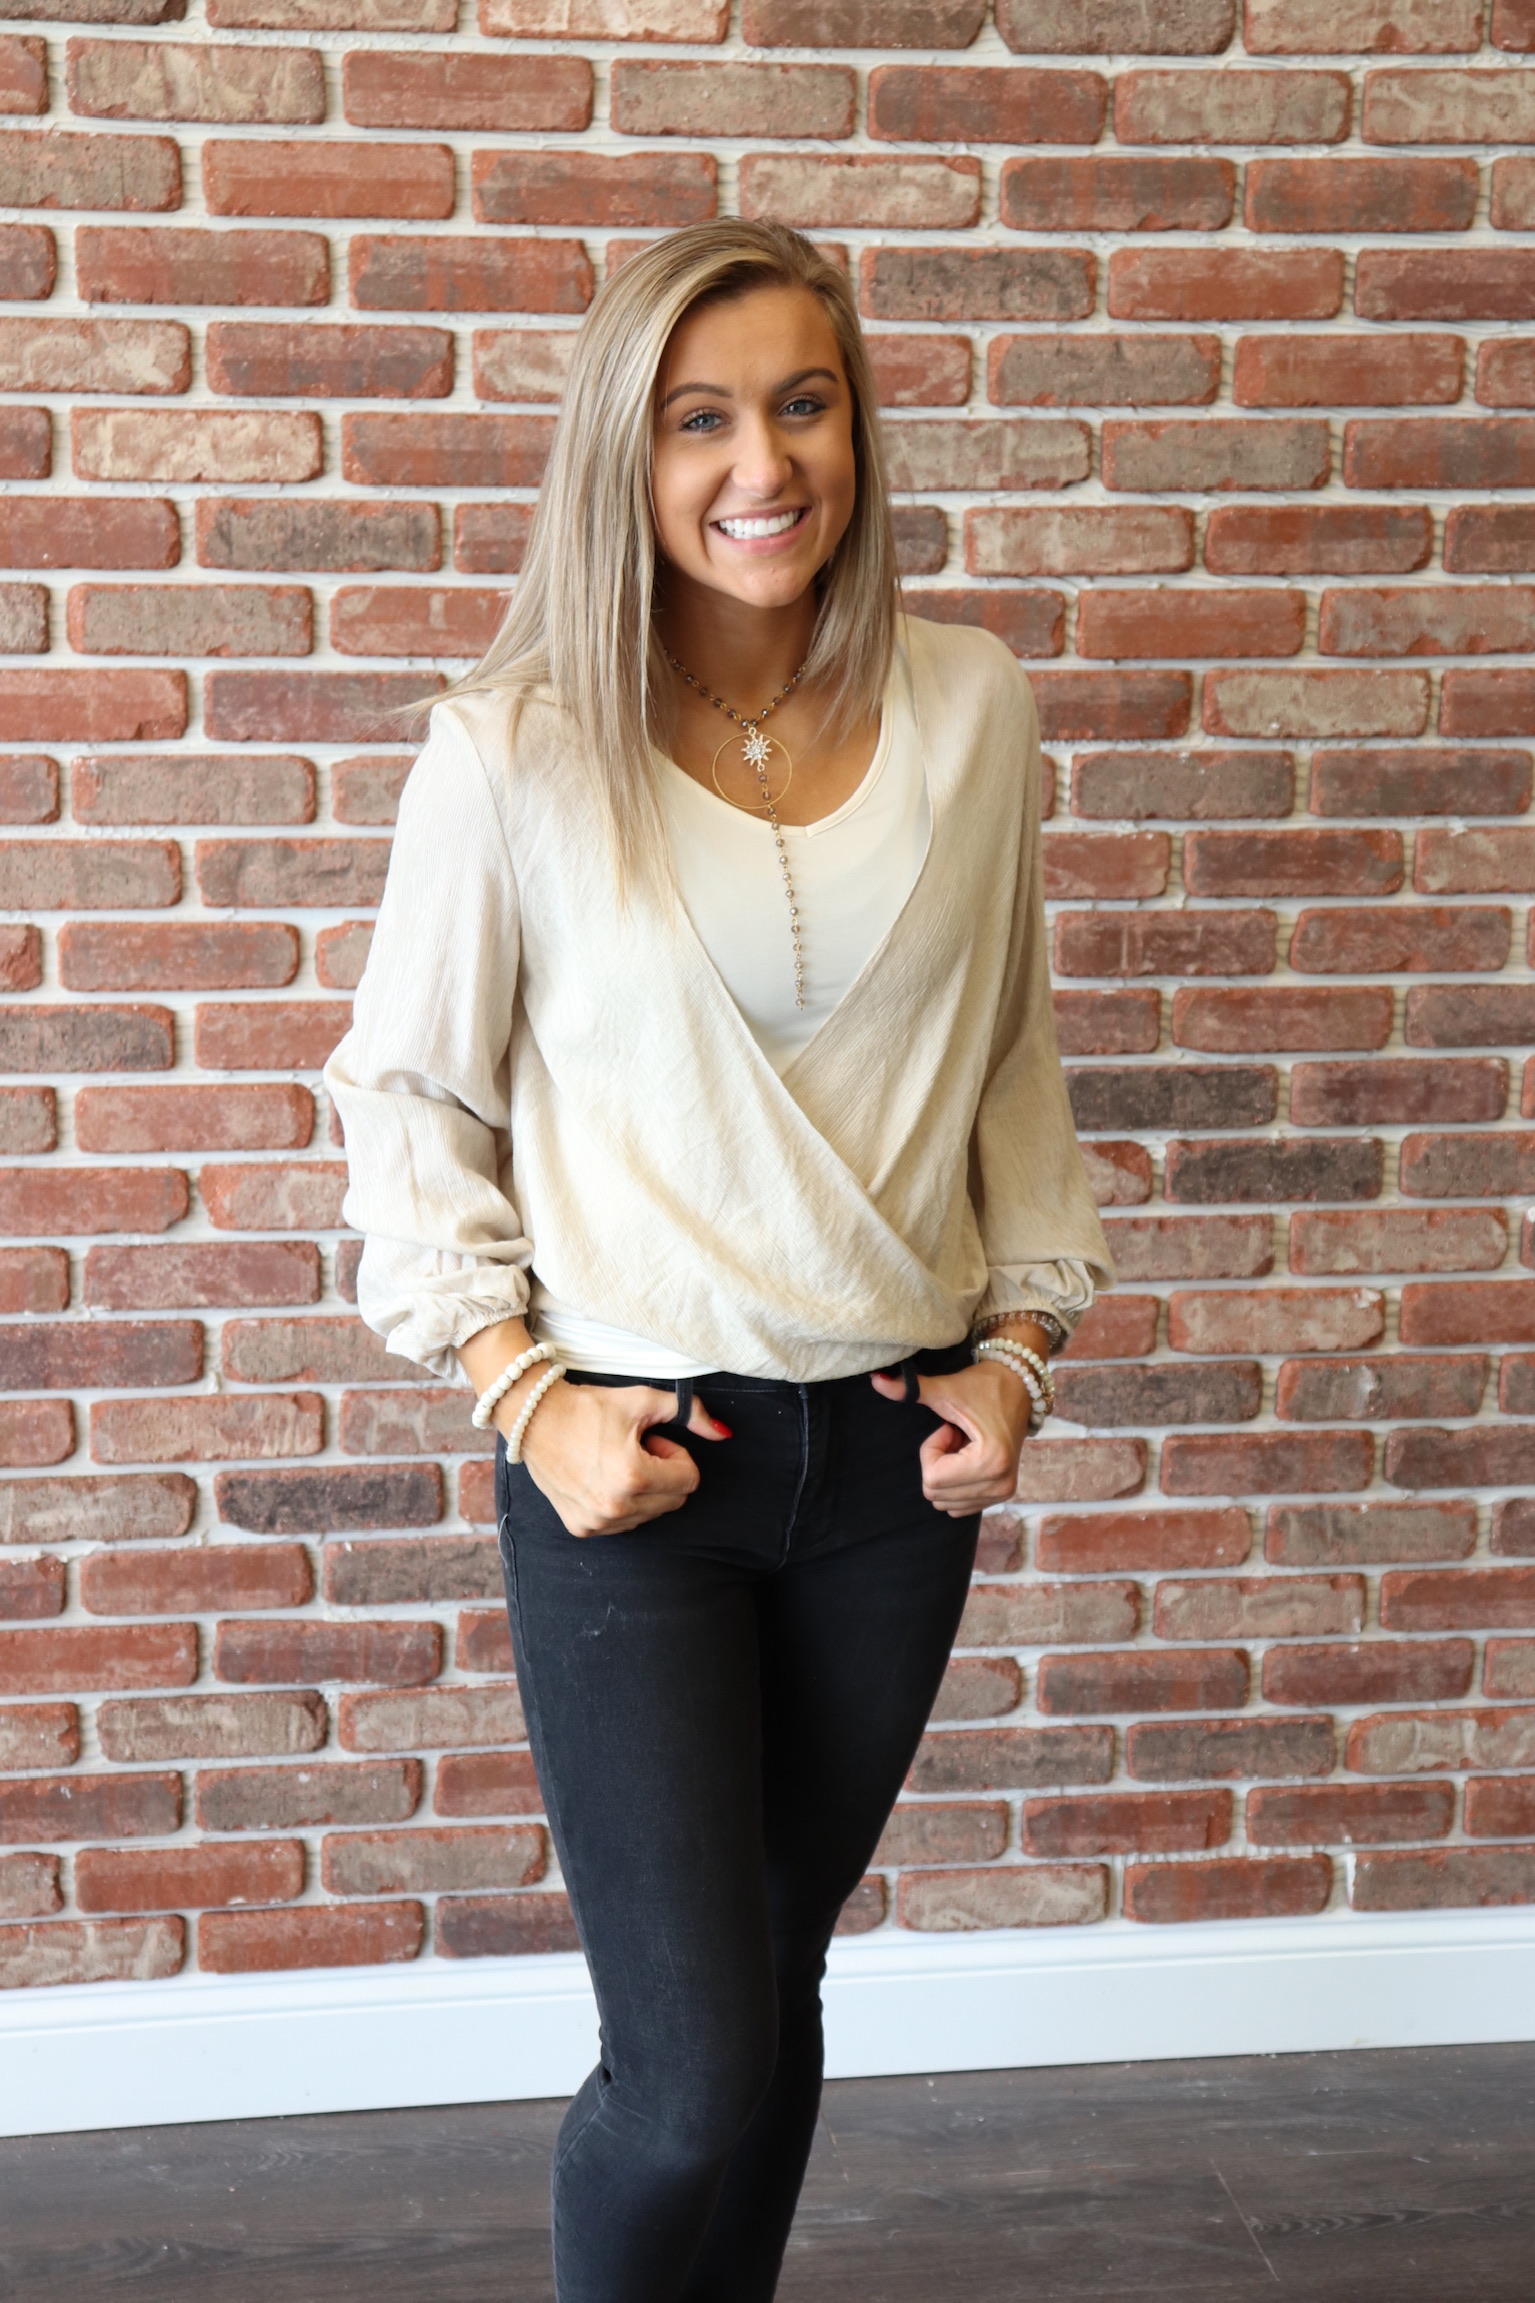 On the more casual side, Sadie is rocking our open front Natalie top. It looks so cute paired with jeans and a pair of mules. Add a Gypsy Gems necklace to make a bold statement!  This look is available in store and will be online soon! Call to order in the meantime.